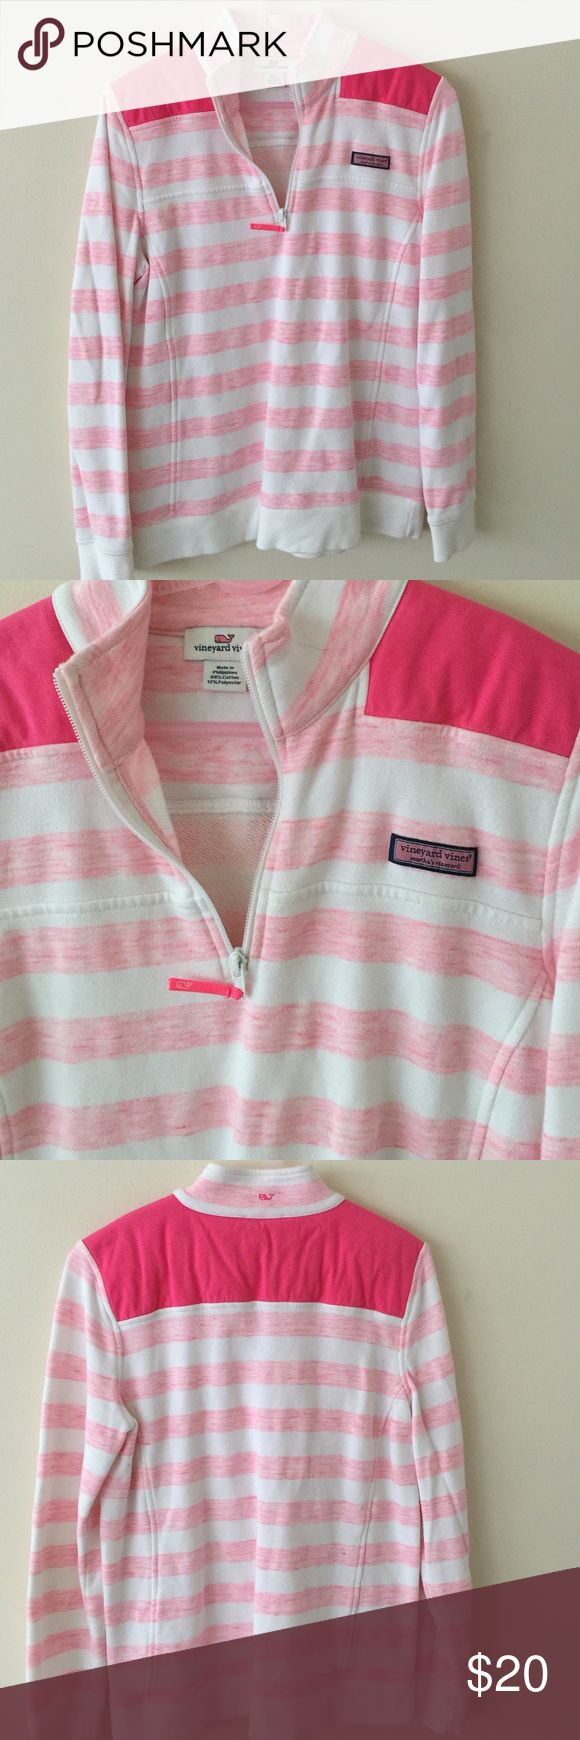 Vineyard Vine Pullover Only wore once. In great condition. 88% cotton 12% polyester Vineyard Vines Other